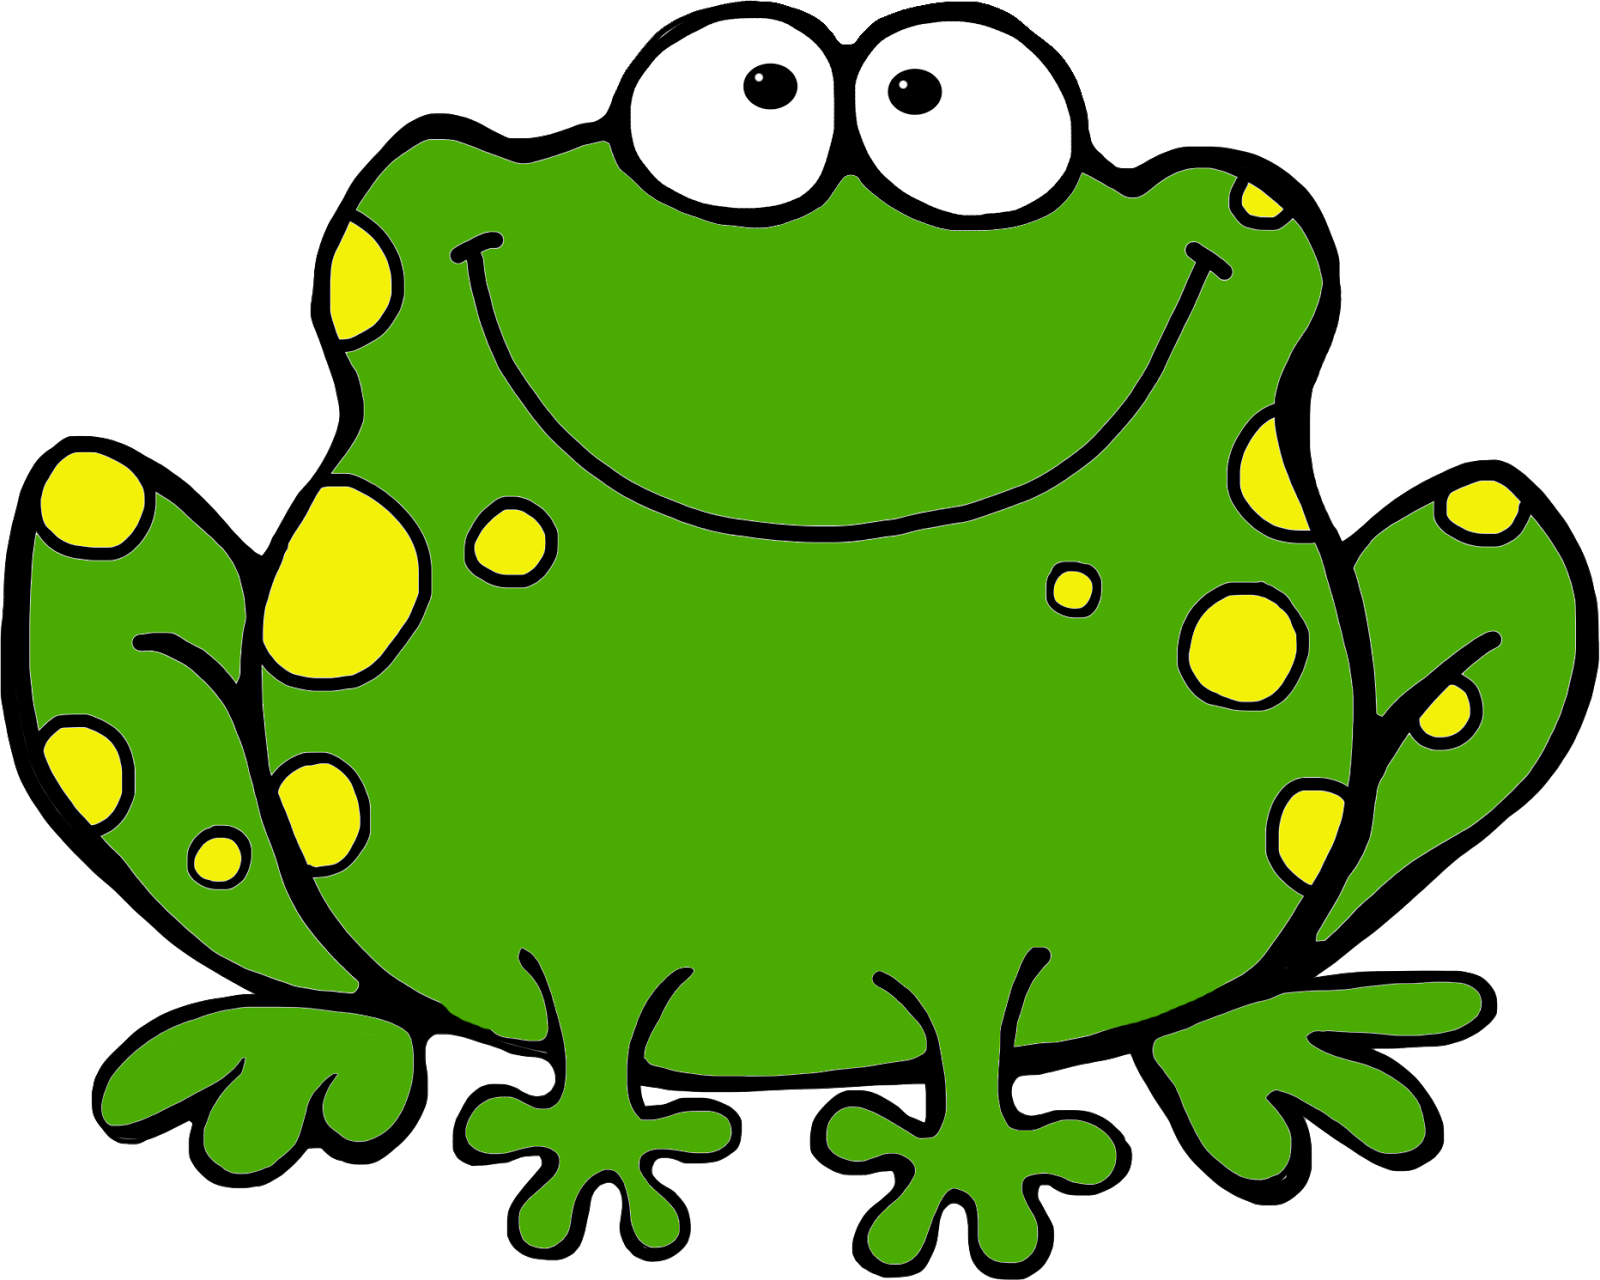 green frog clipart - photo #2